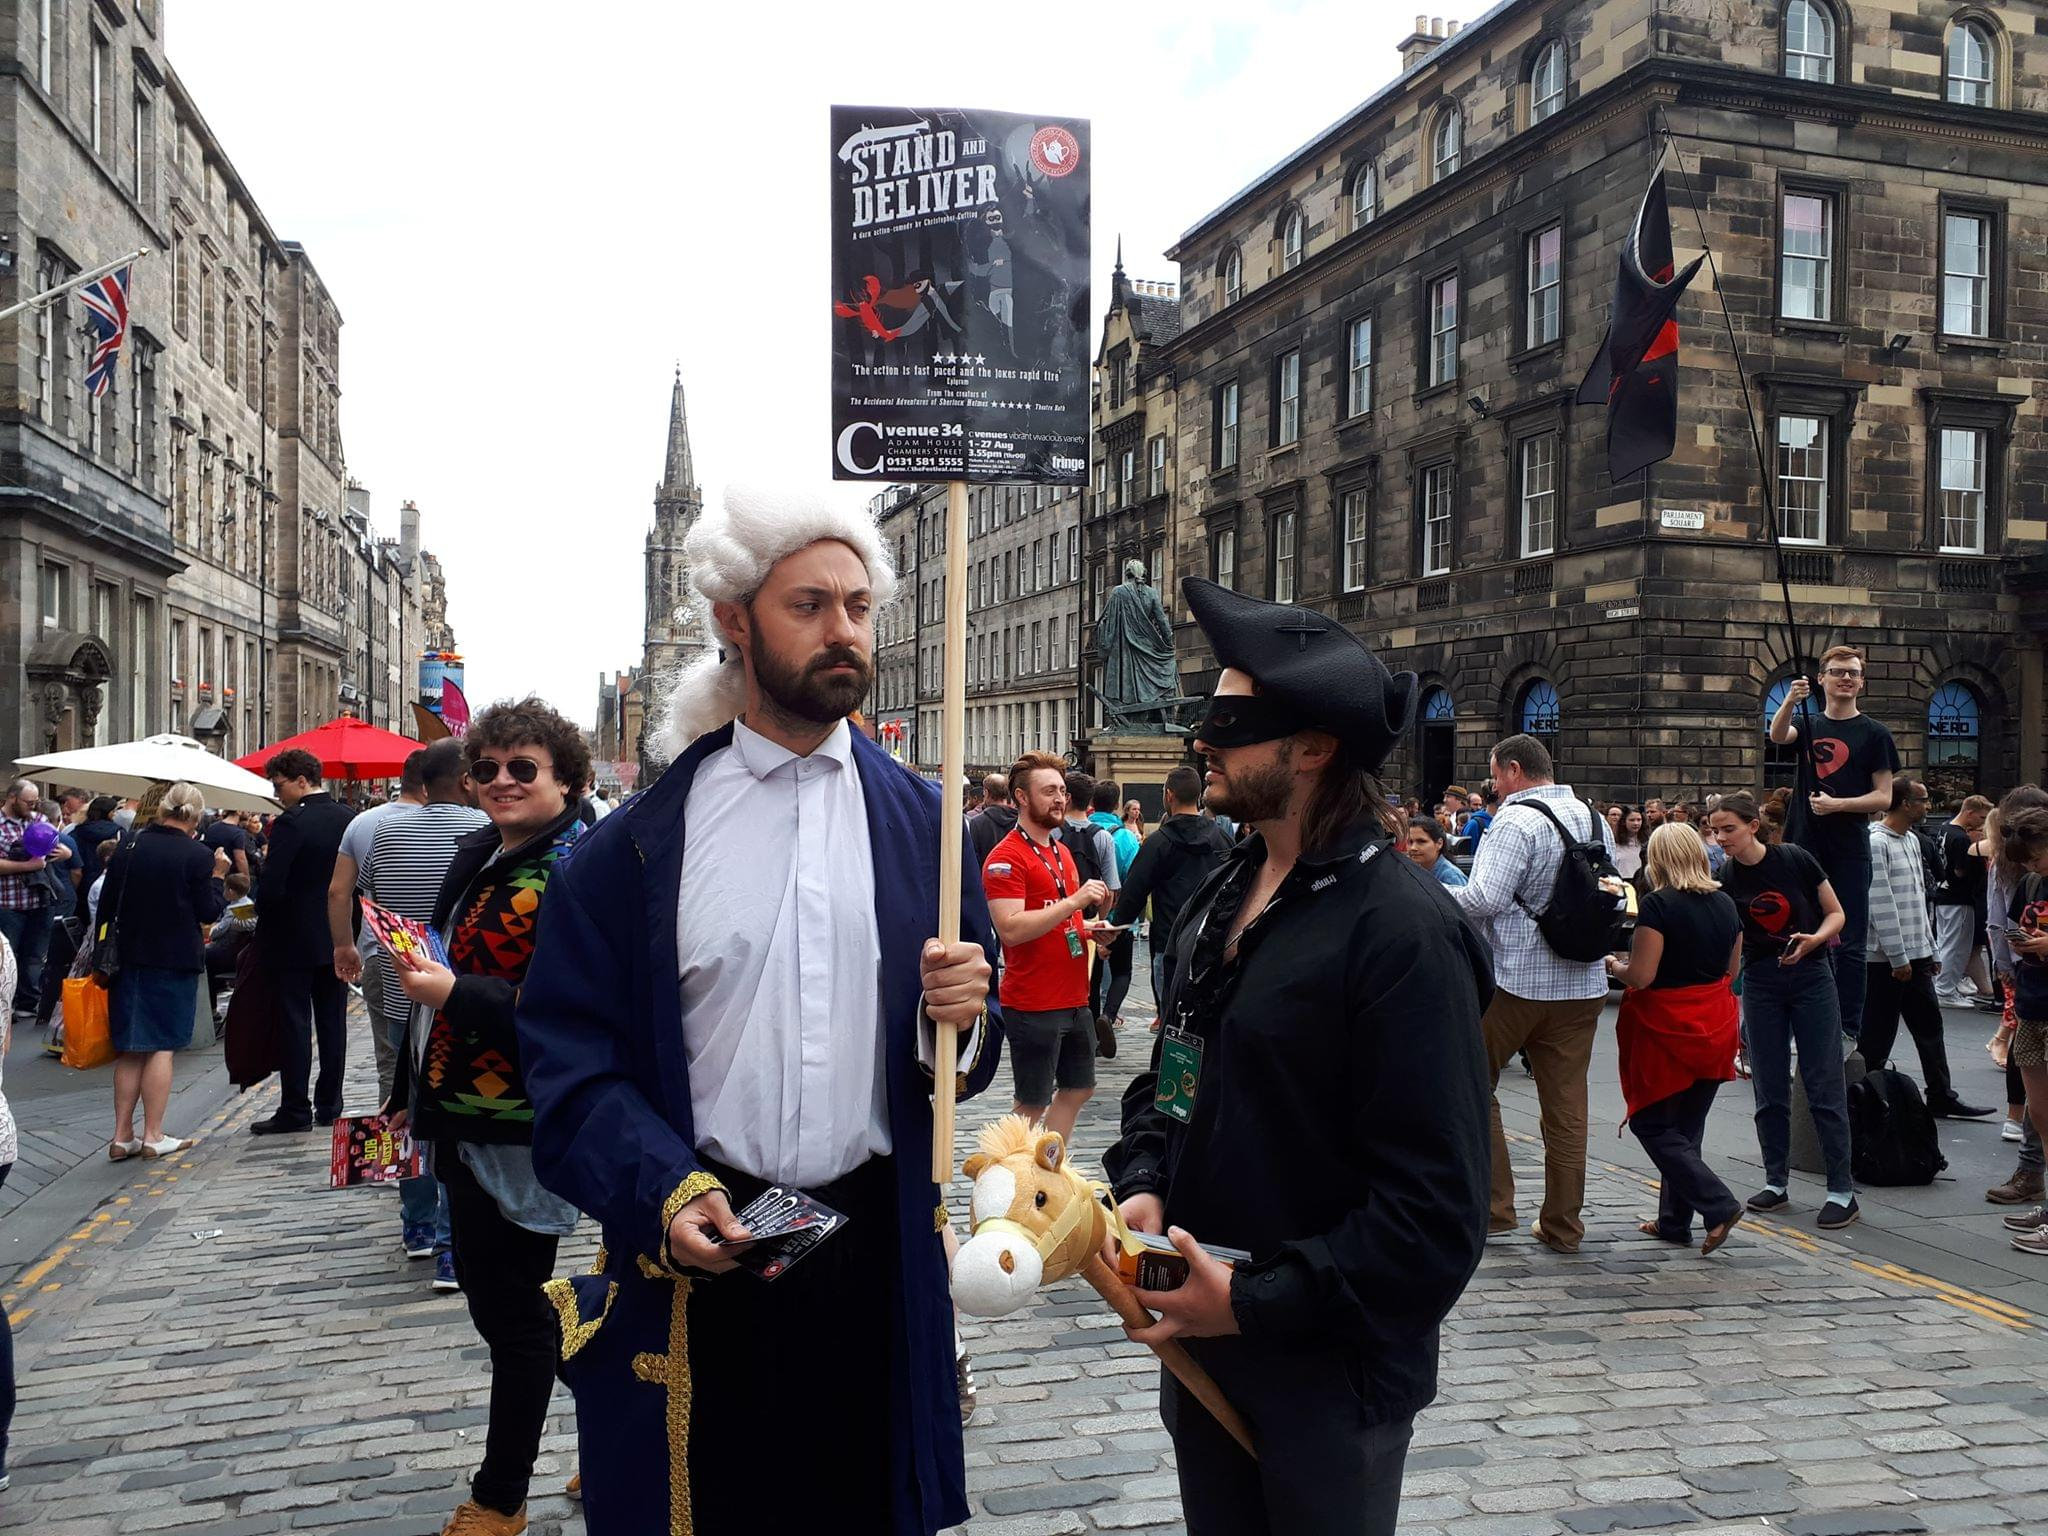 Joey Bartram and Ashley Shires, flyering for Stand and Deliver at Edinburgh Fringe Festival